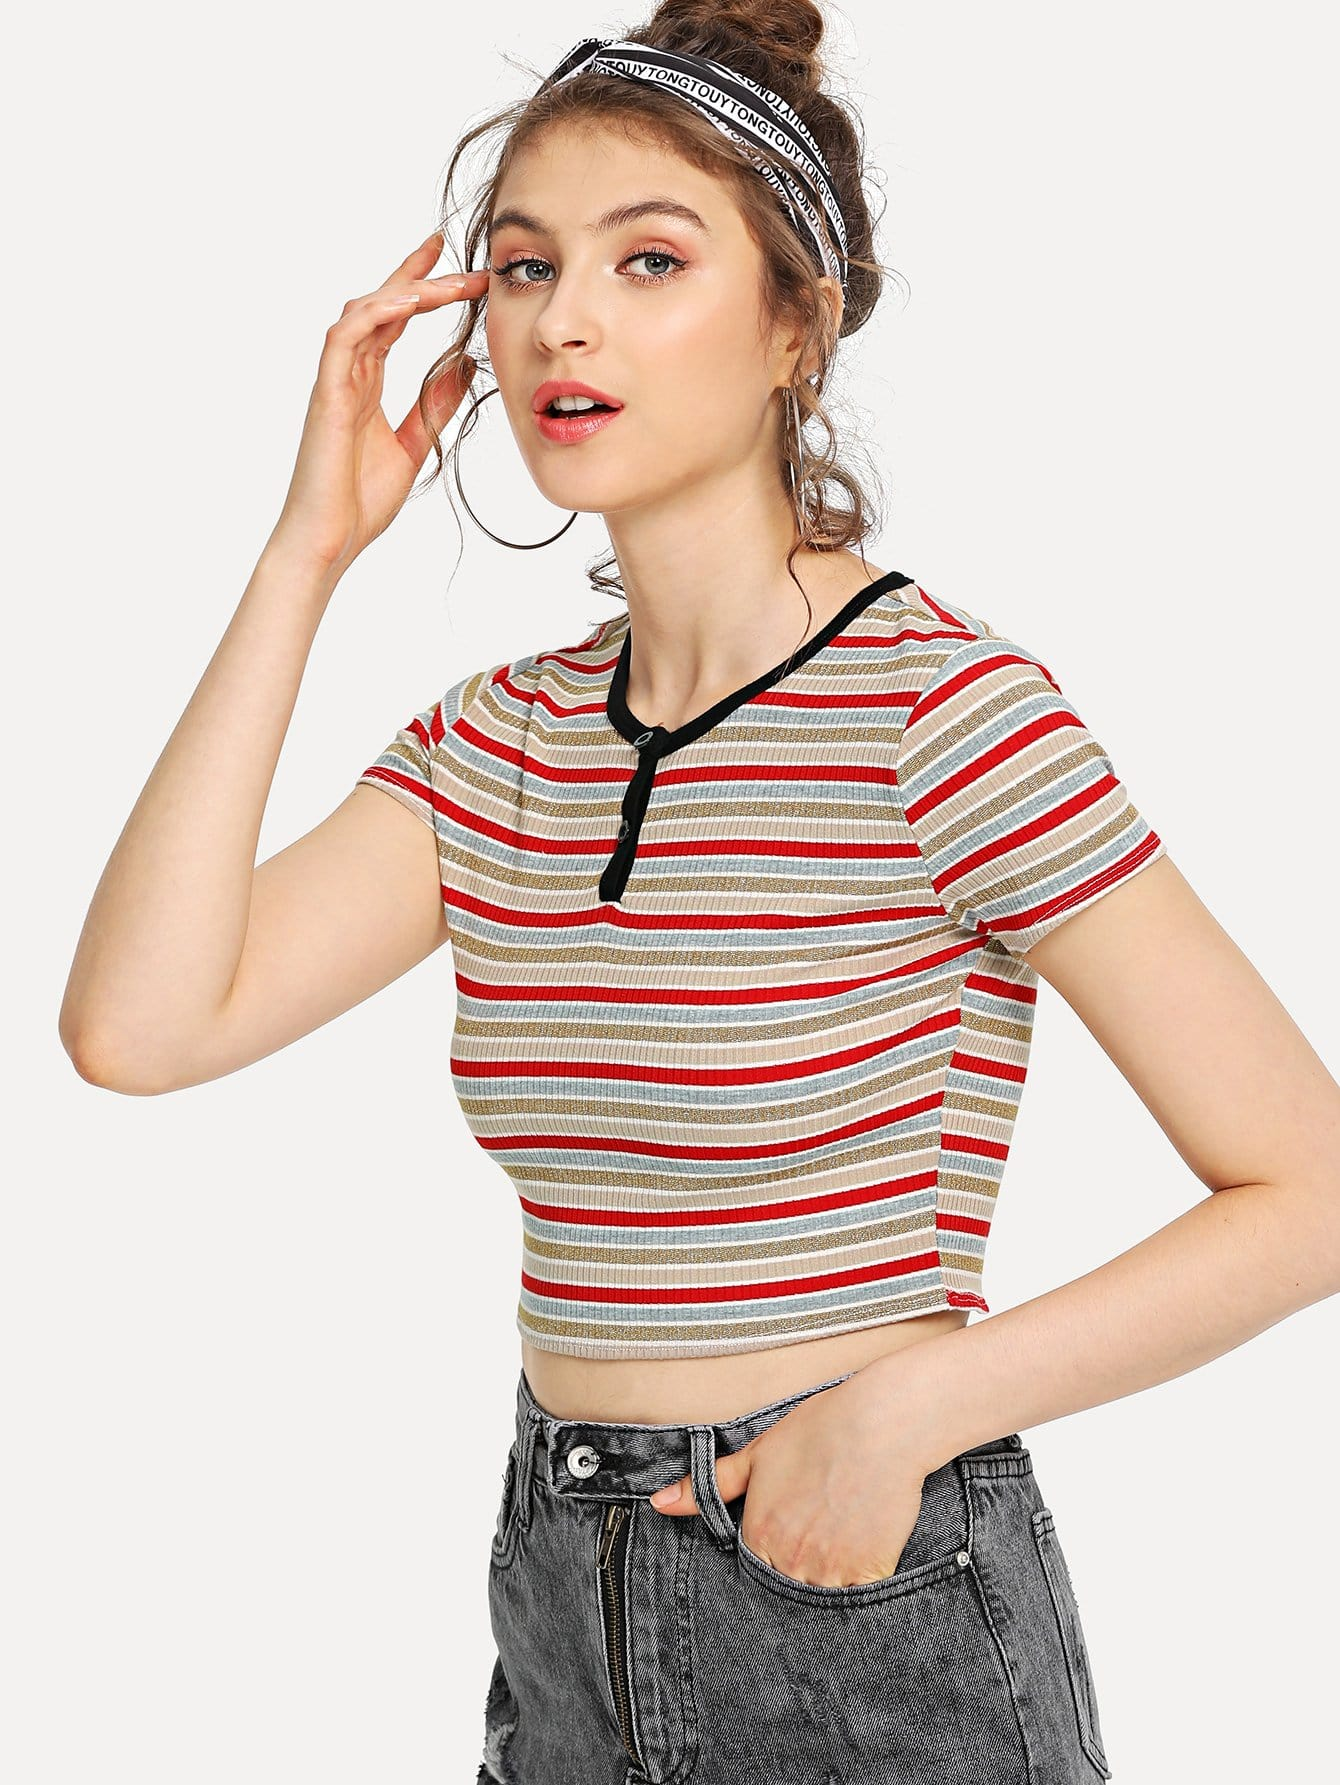 Contrast Neck Rib Knit Crop Striped Tee square neck rib knit crop tee